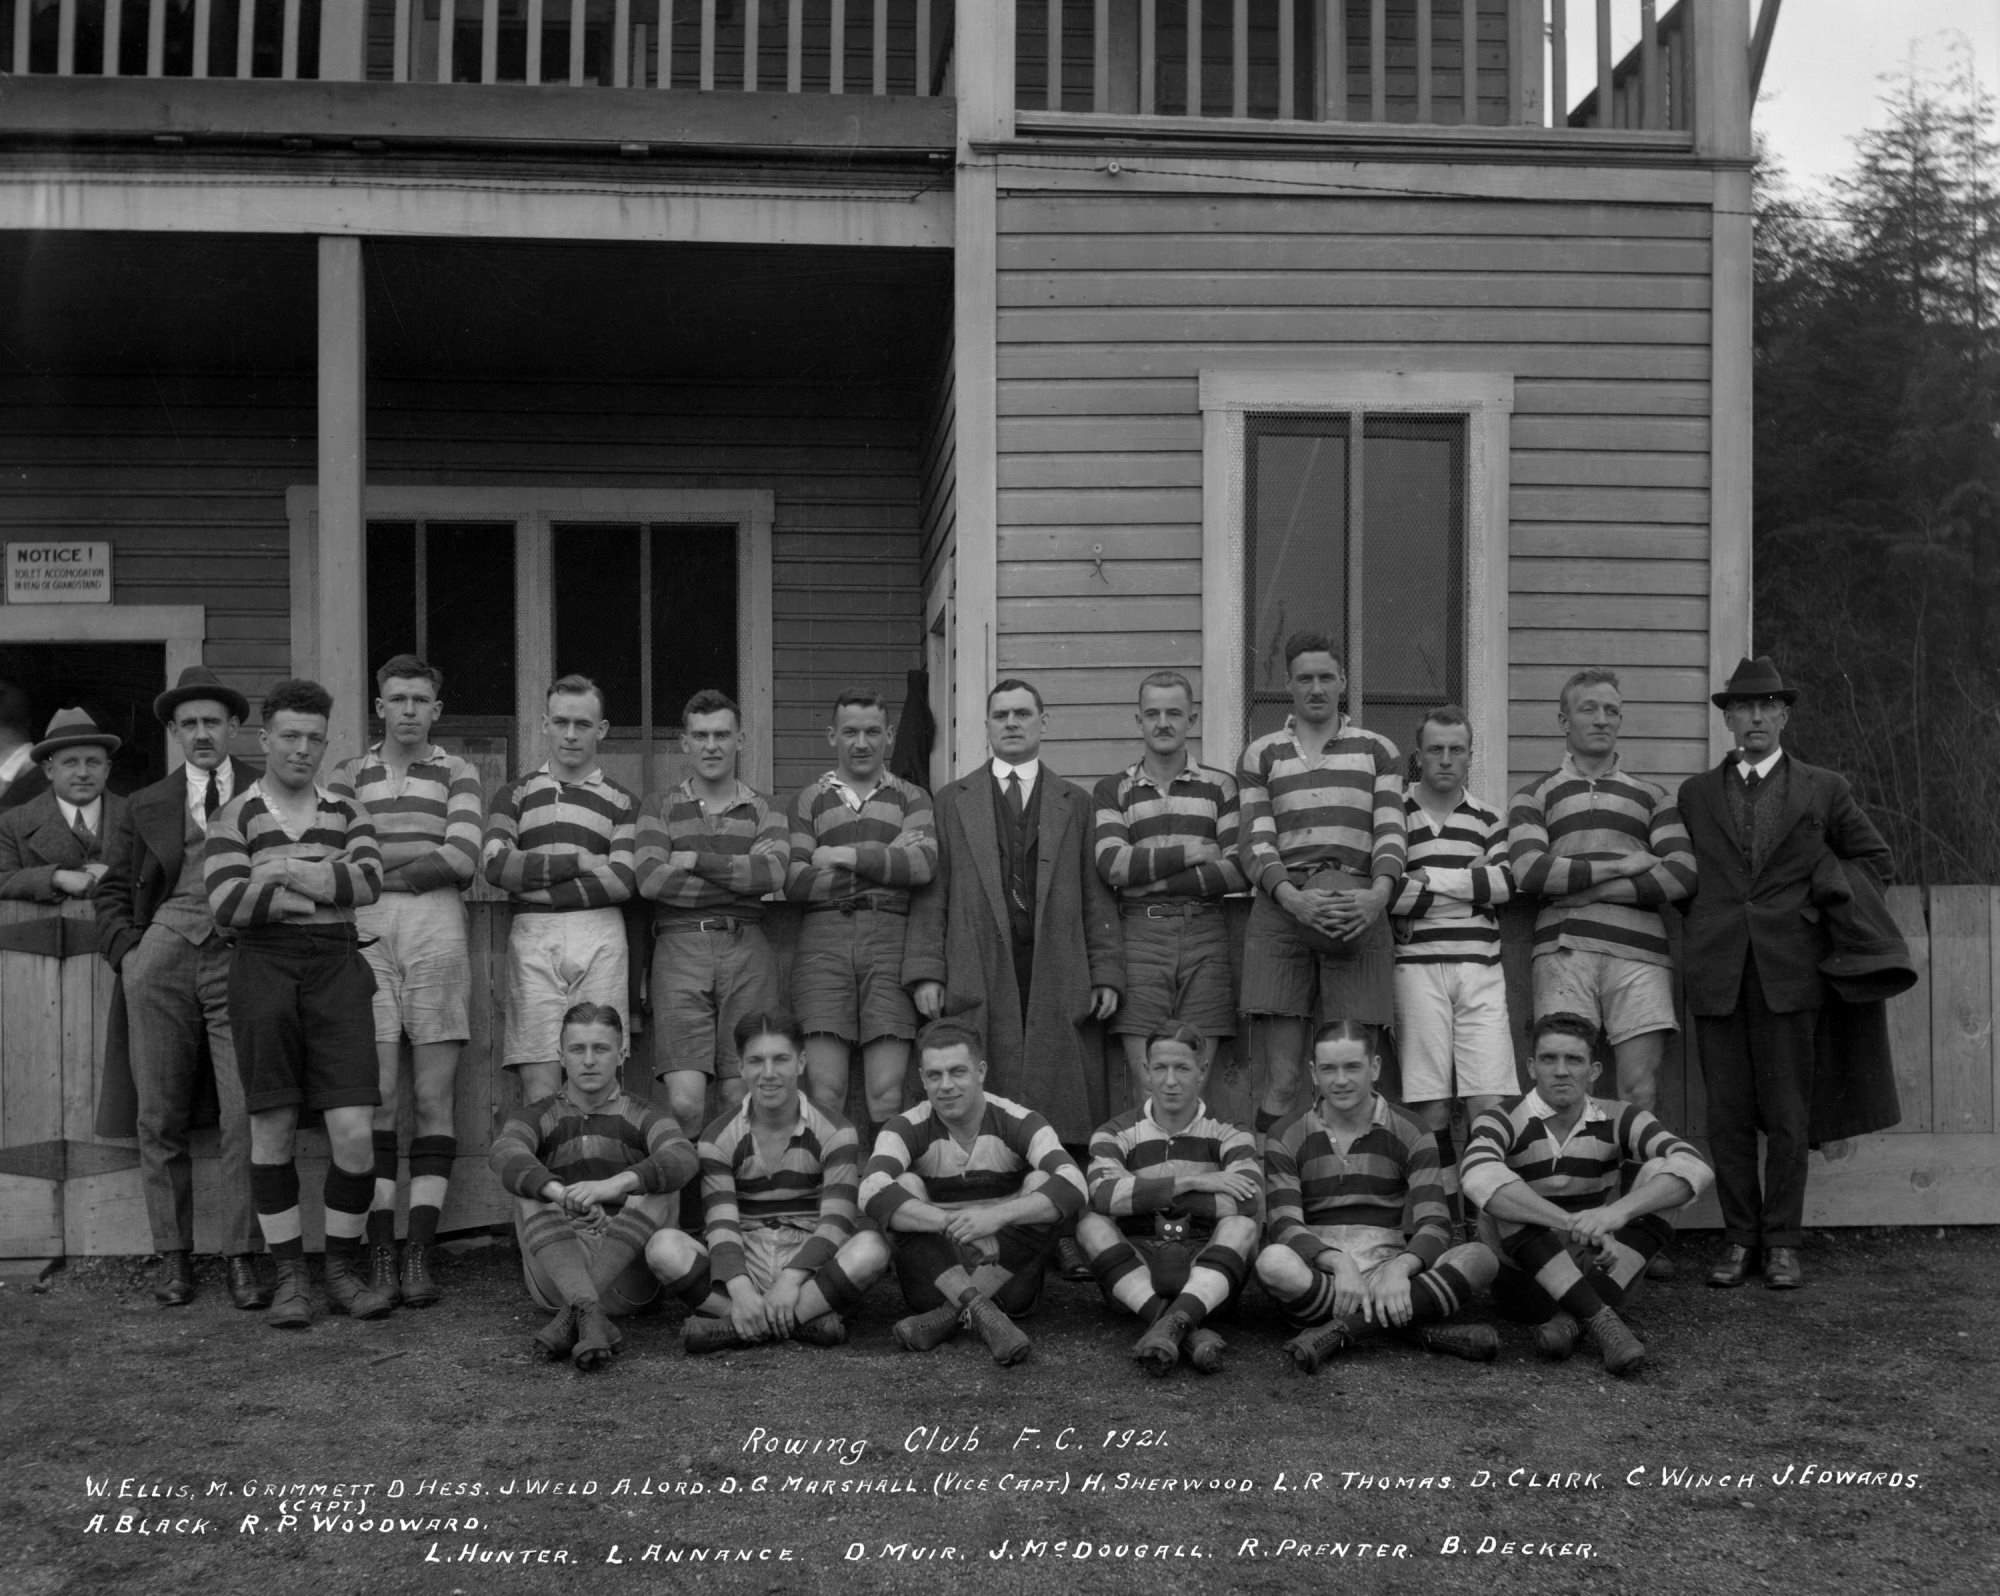 1921-rowing-club-FC